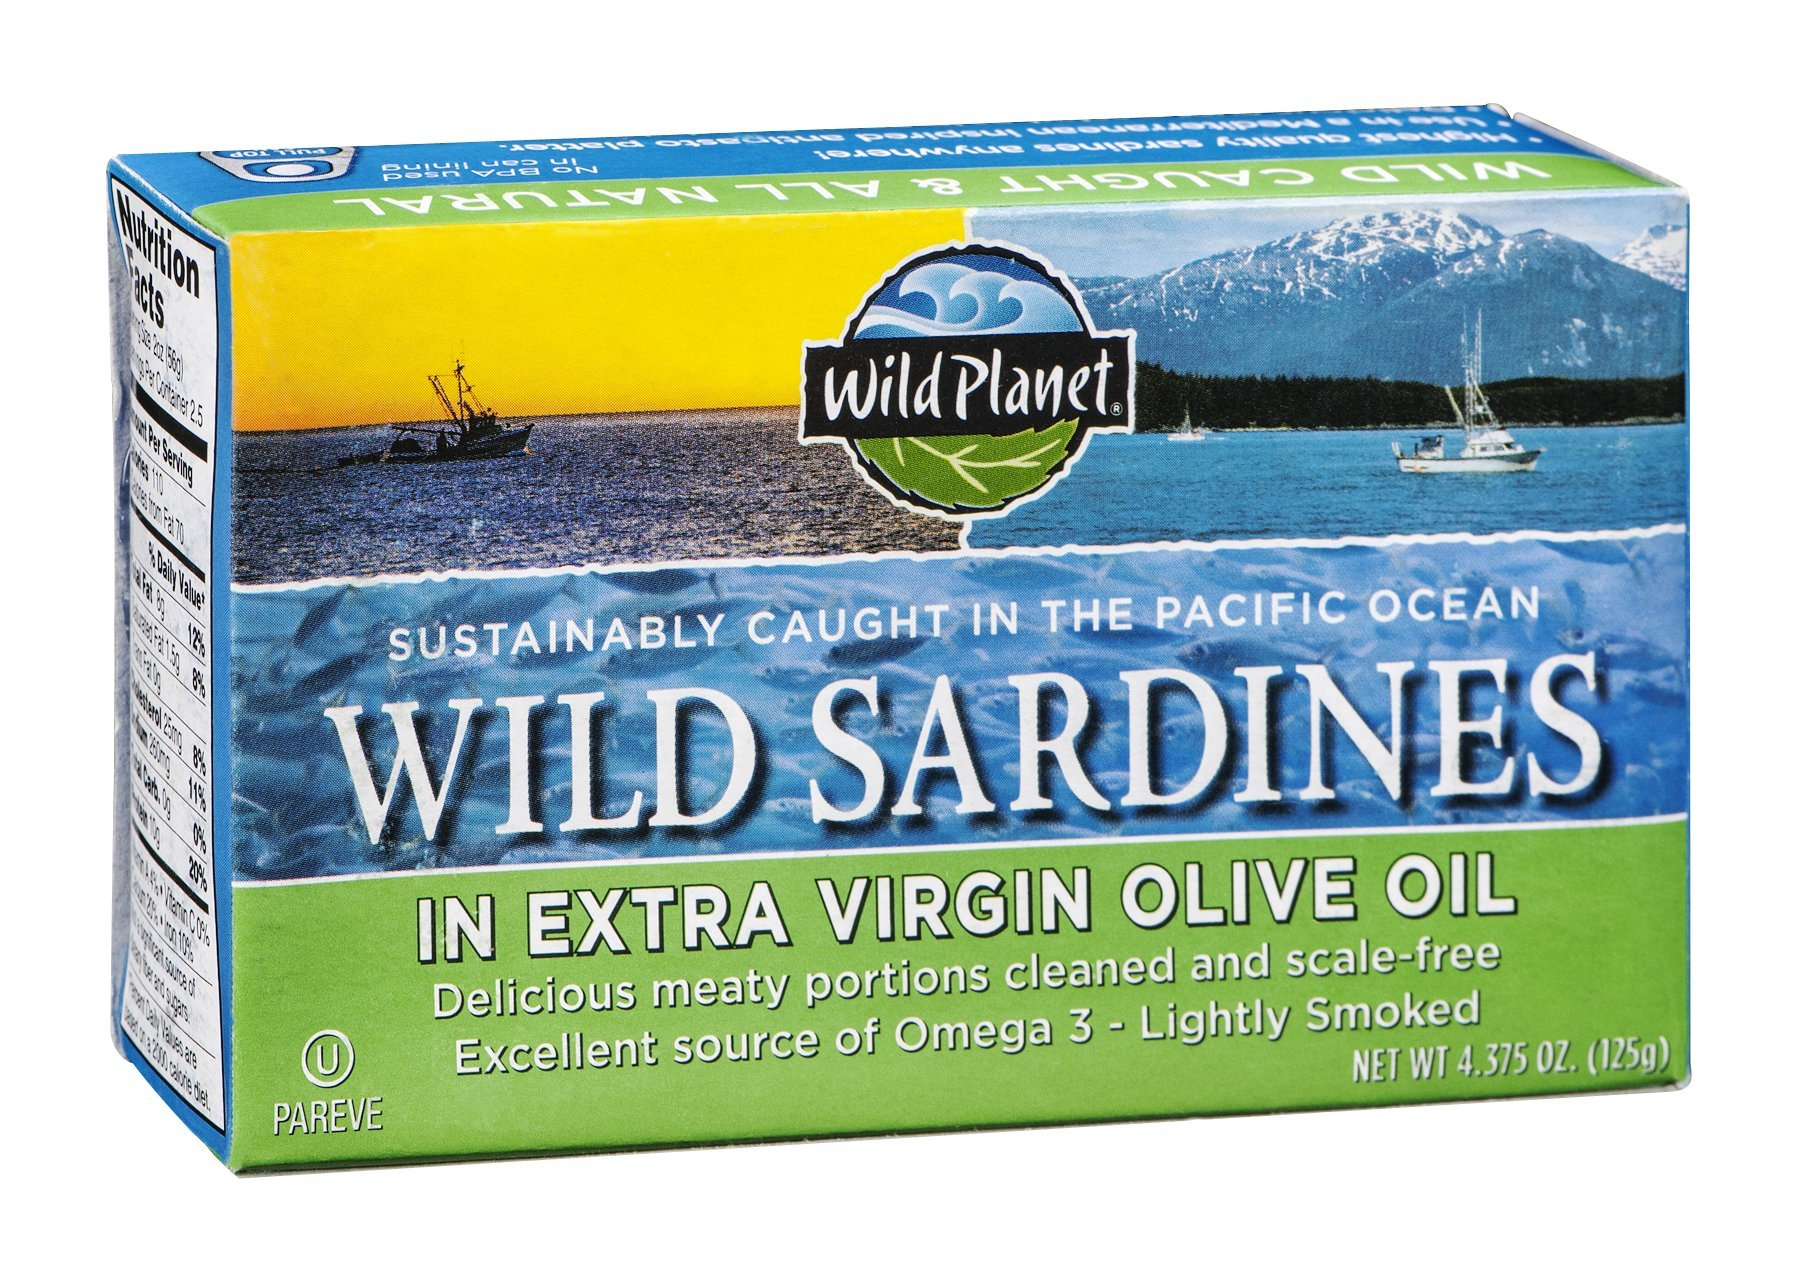 Wild Planet Sardines in Extra Virgin Olive Oil, Lightly Smoked, 4.25 Ounce Tin (Pack of 12)